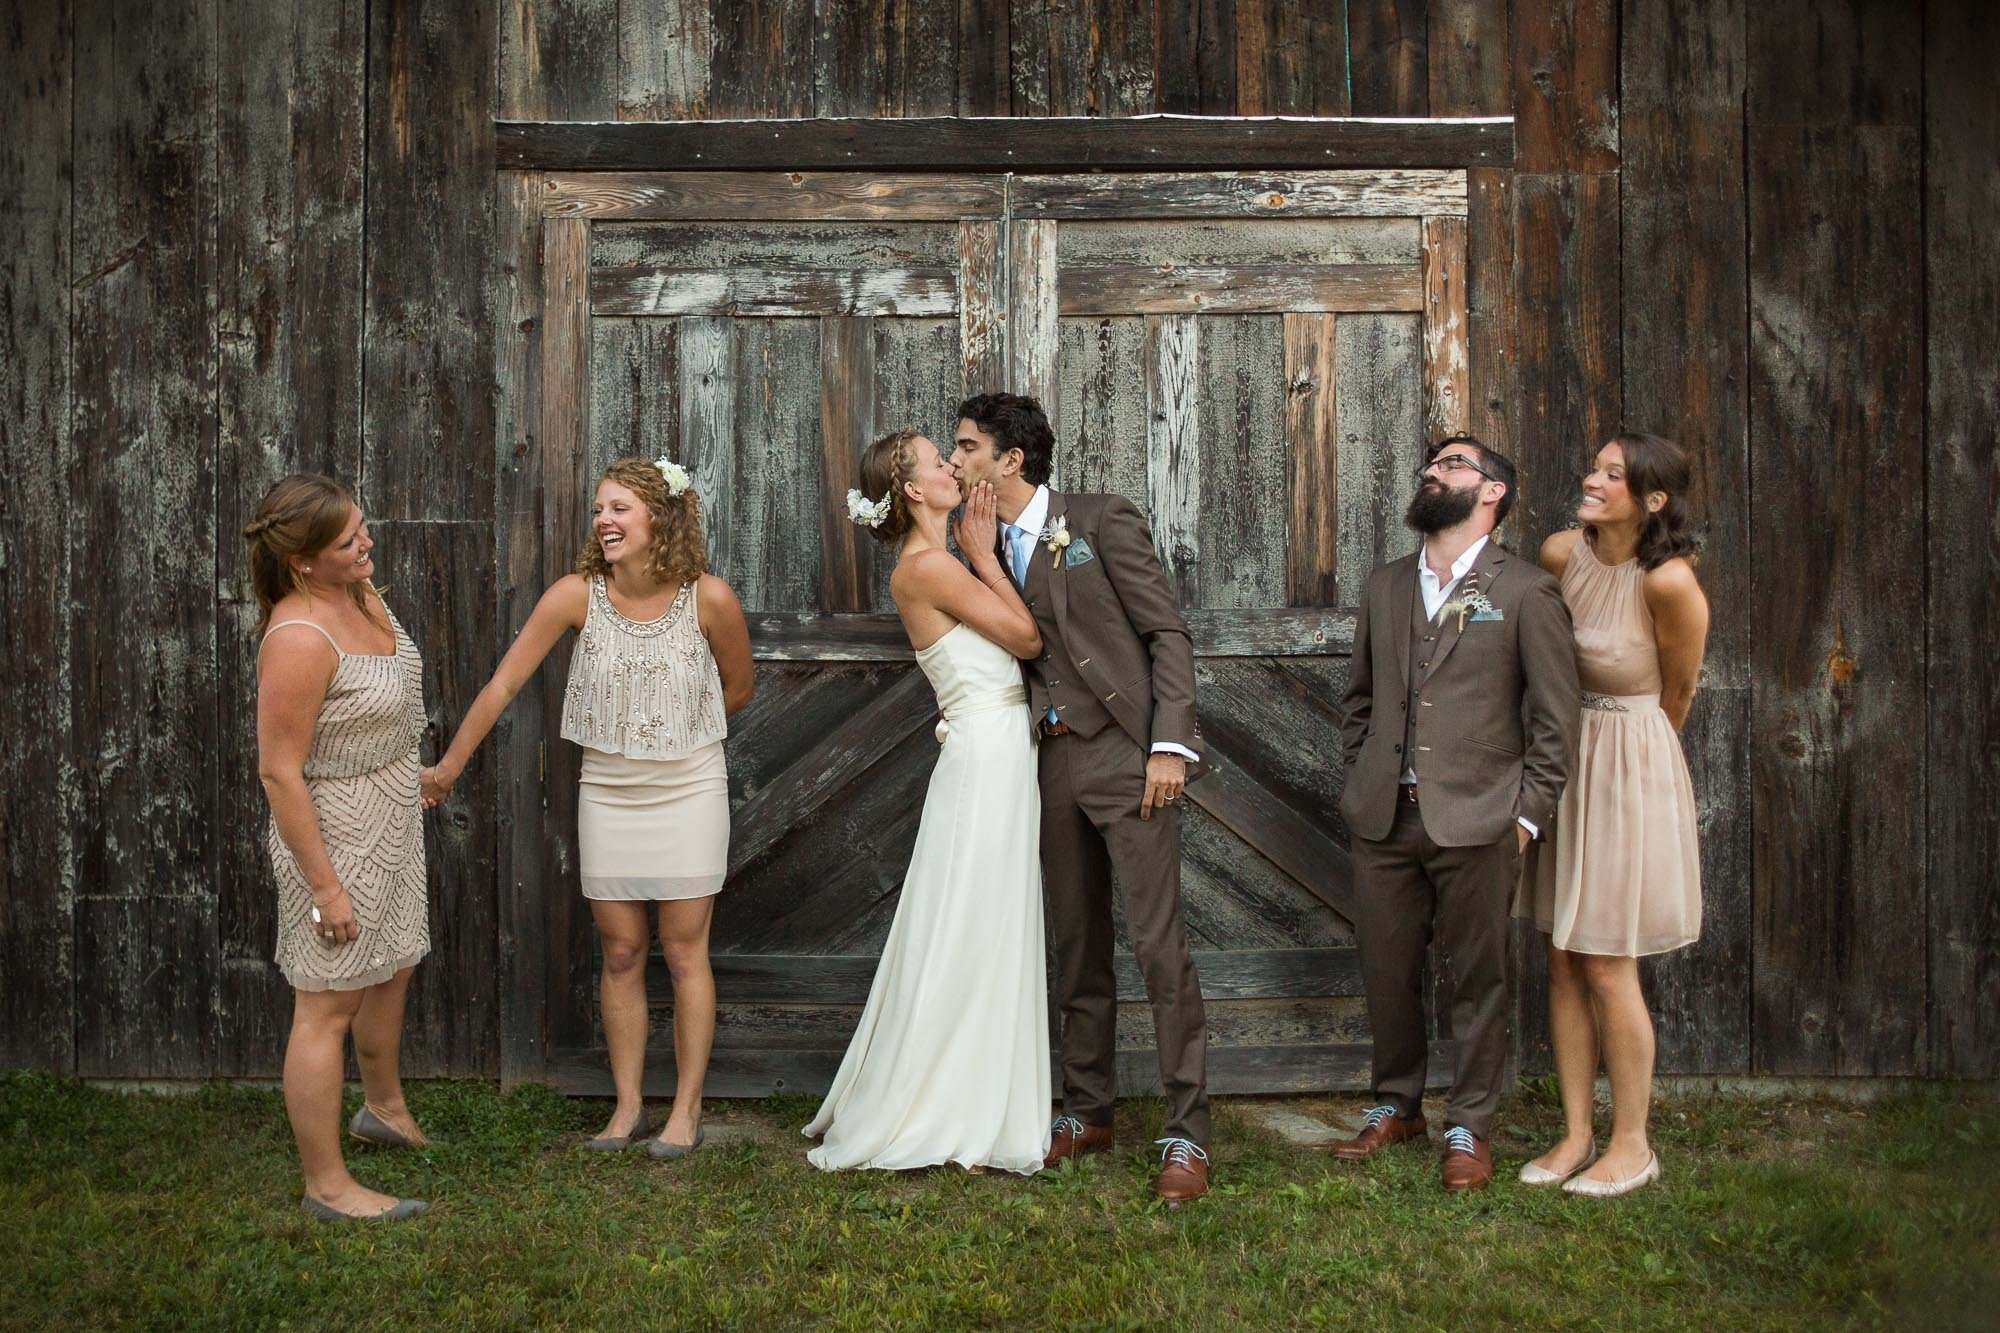 Camp-Rustic-lake-wedding-connecticut-photographer-39